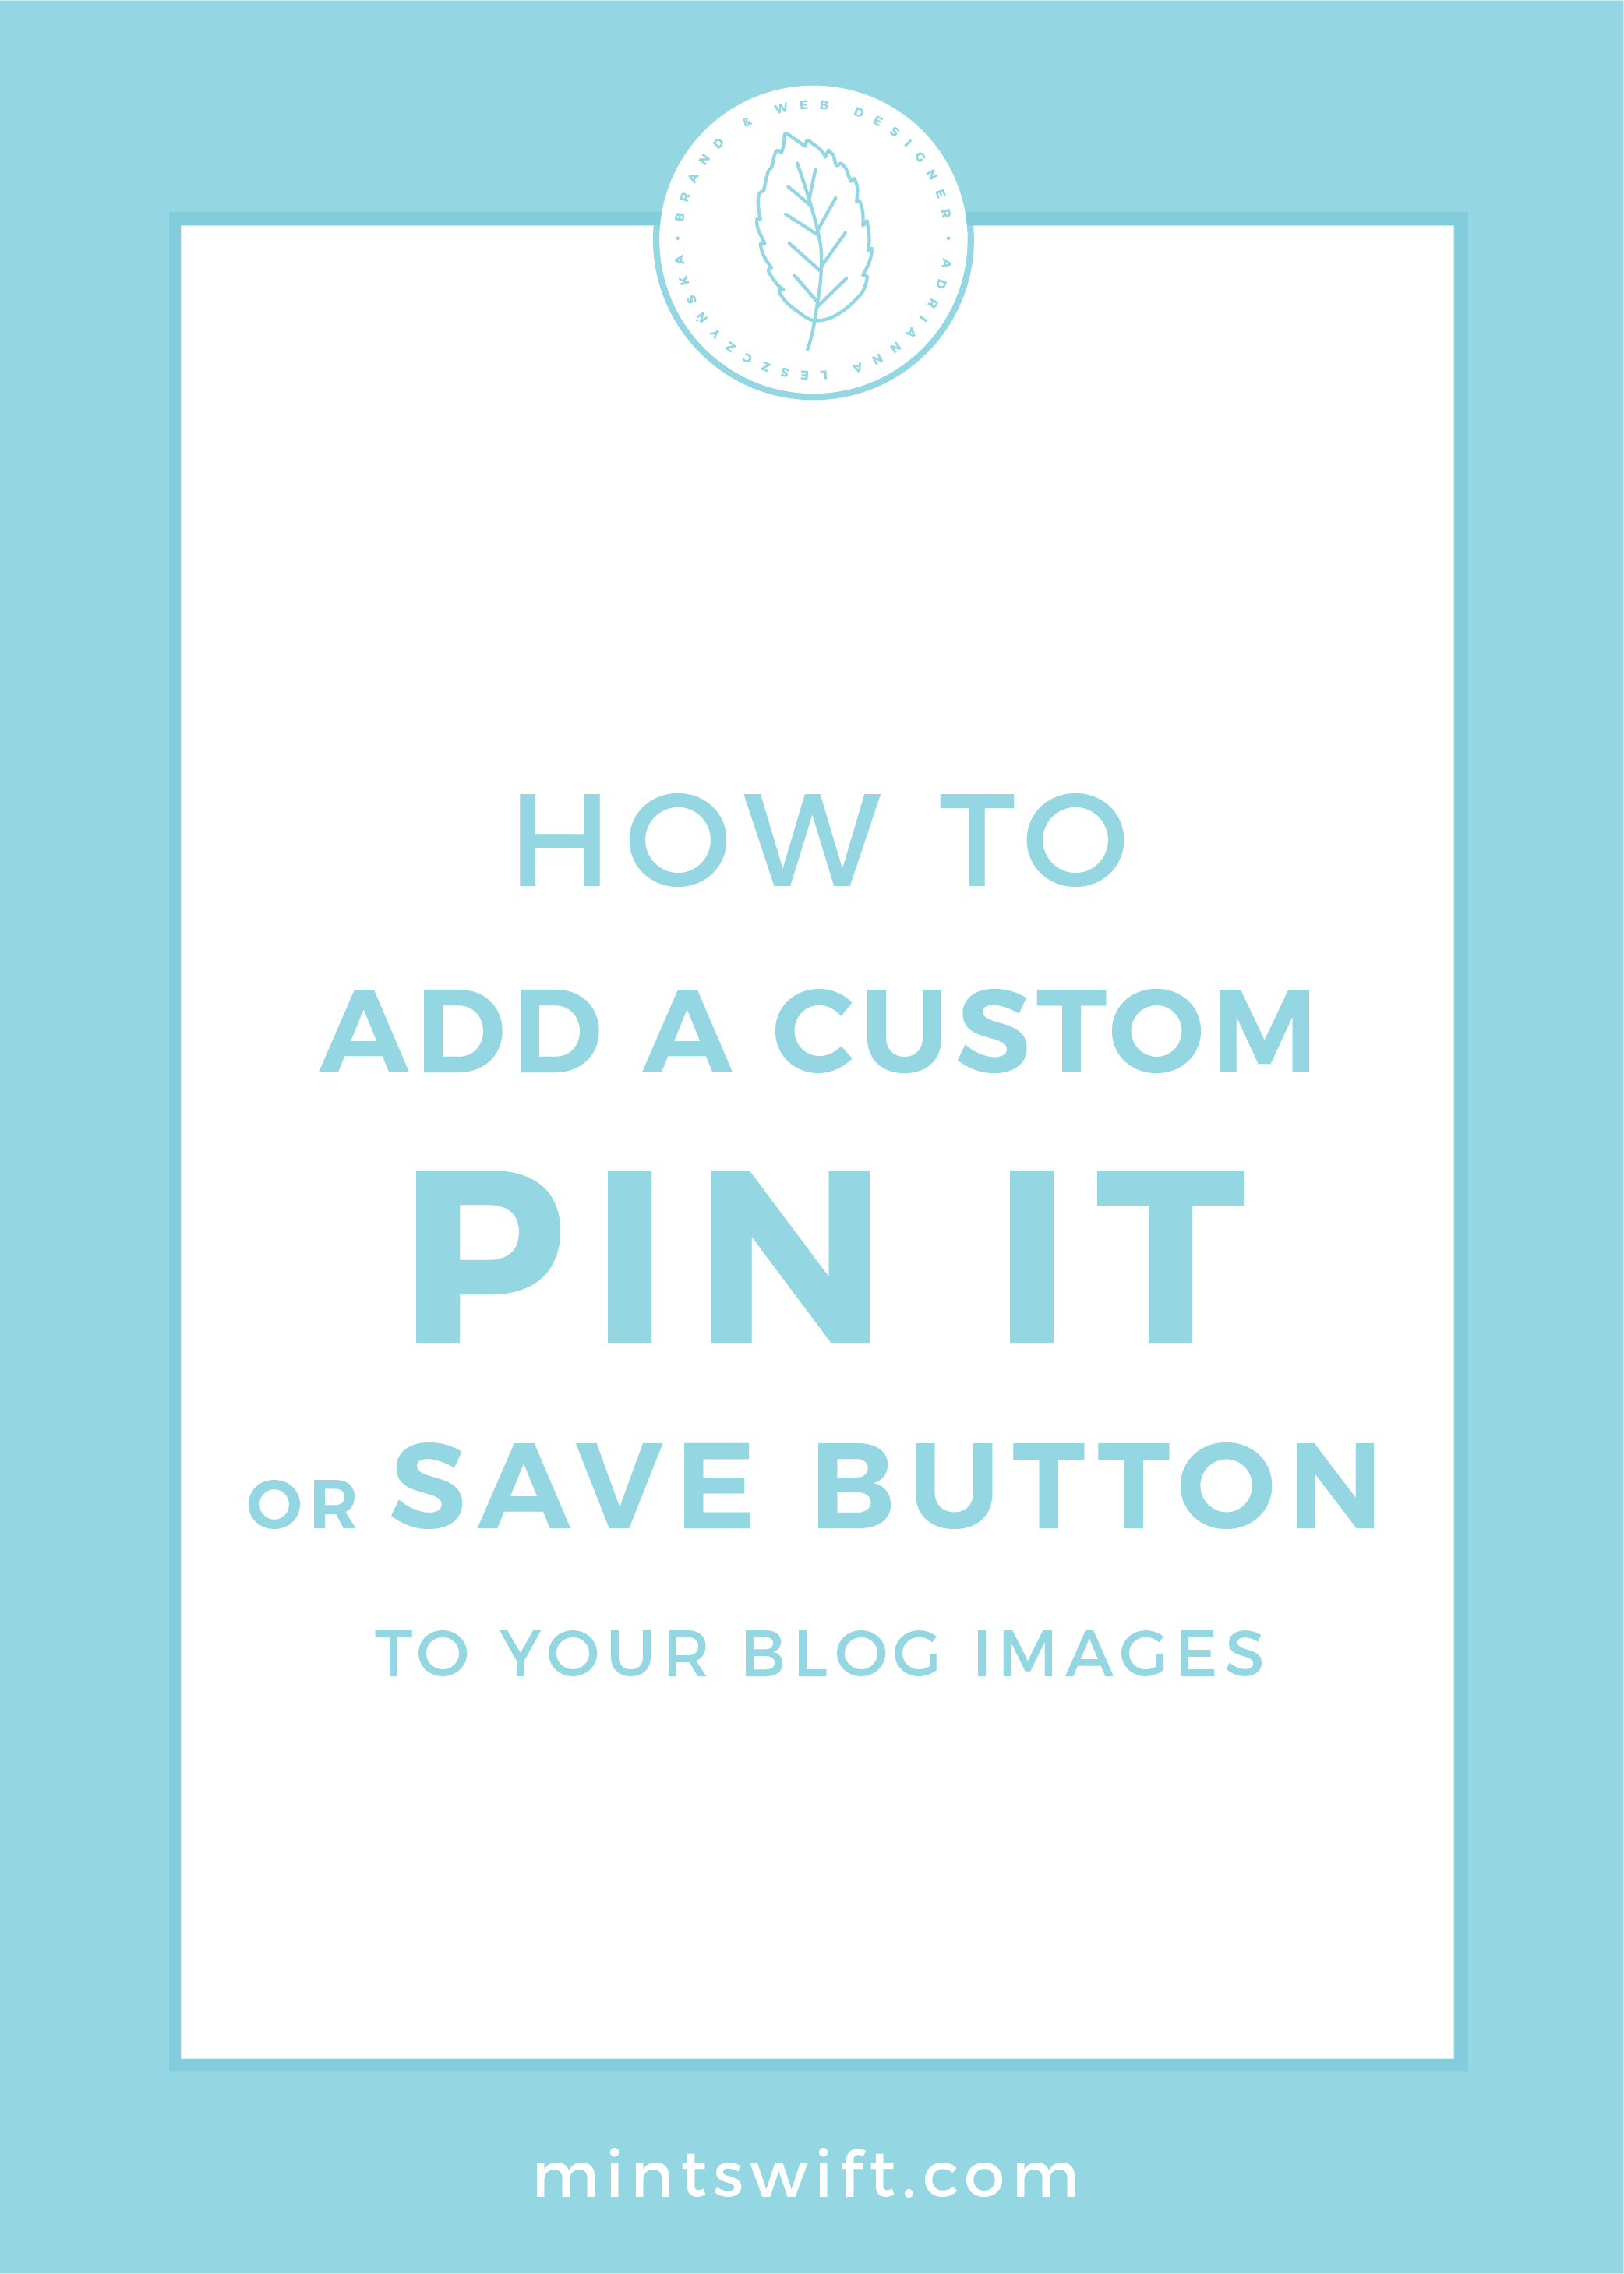 How to Add a Custom Pin It or Save Button to Your Blog Images by MintSwift